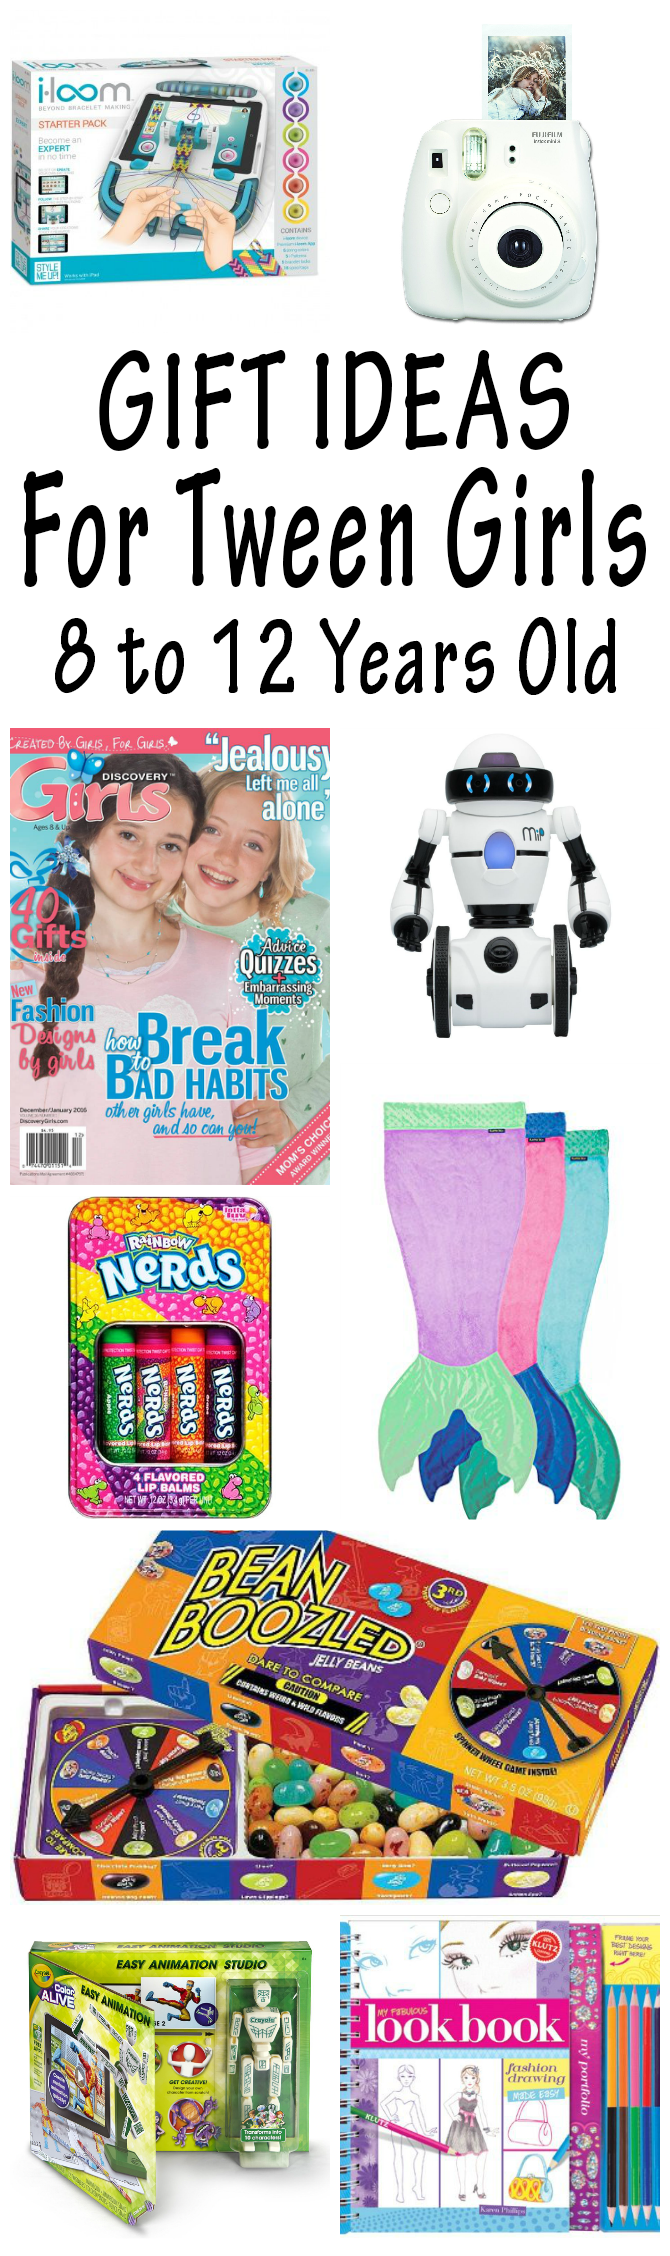 Gift Ideas For Tween Girls They Will Love: 2019 Gift Guide ...